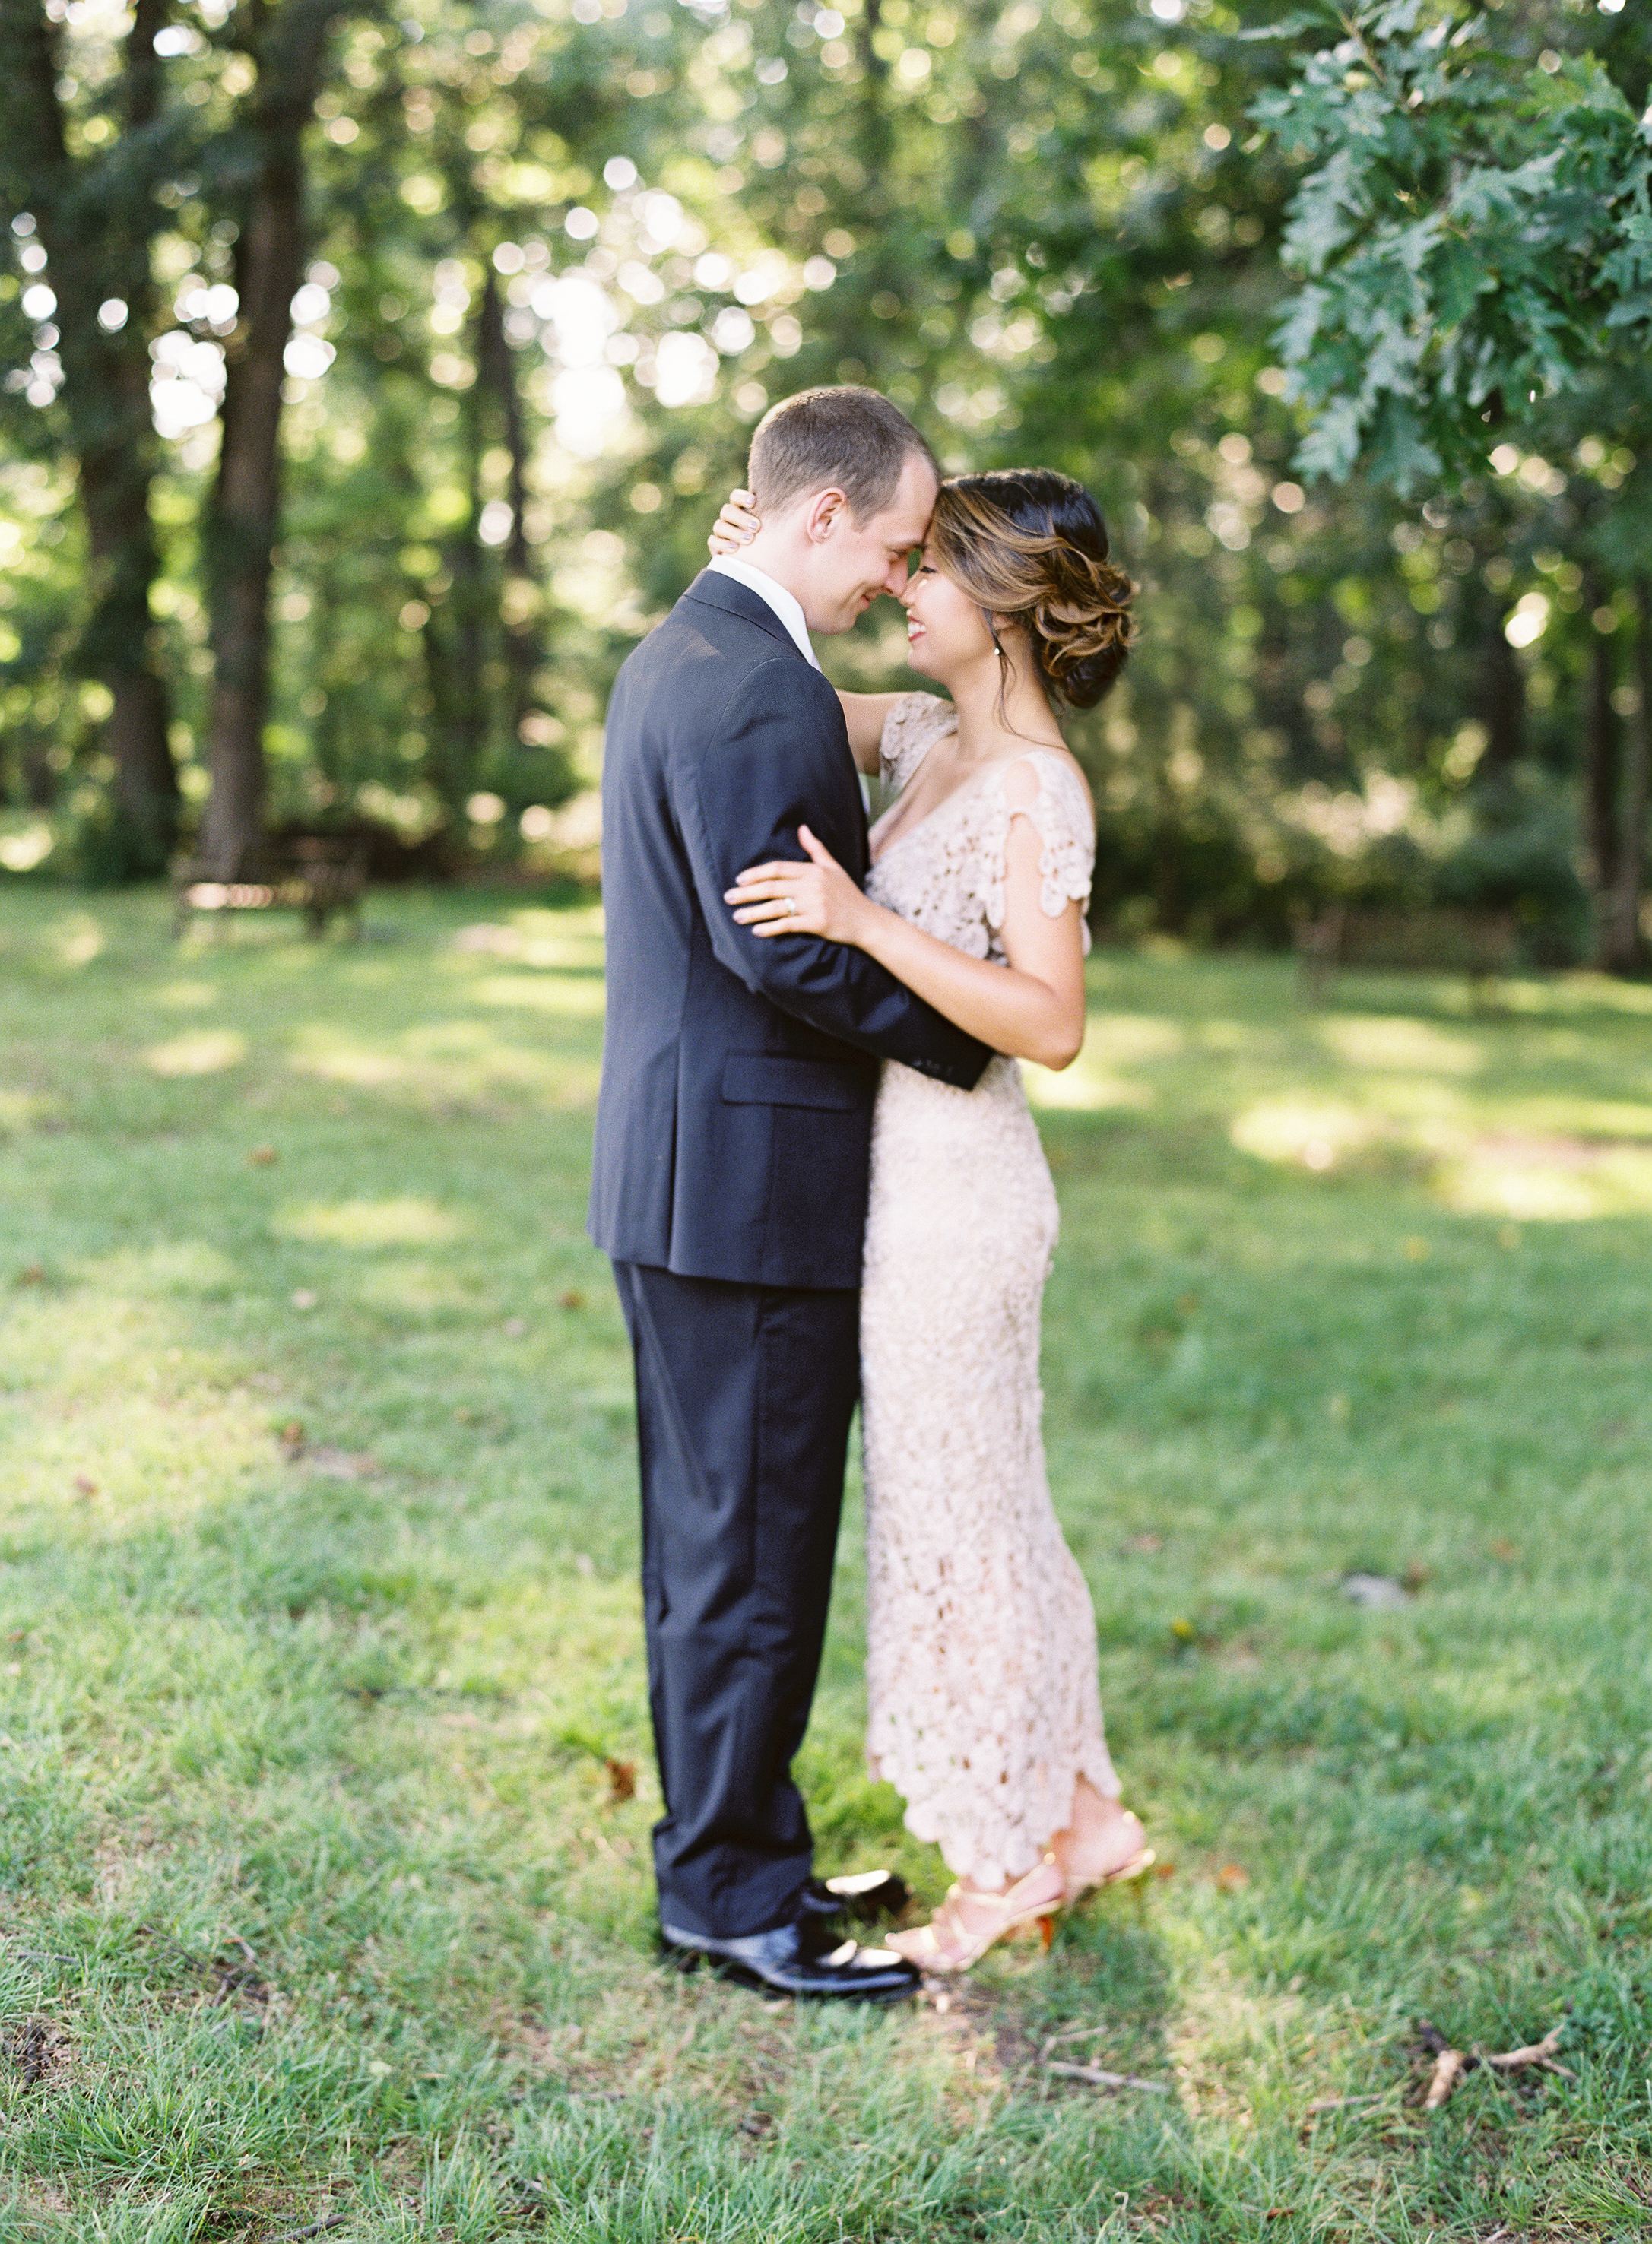 Meghan Mehan Photography - New York City Film Wedding Photographer | New York | San Francisco | Napa | Sonoma | Los Angeles 001.jpg